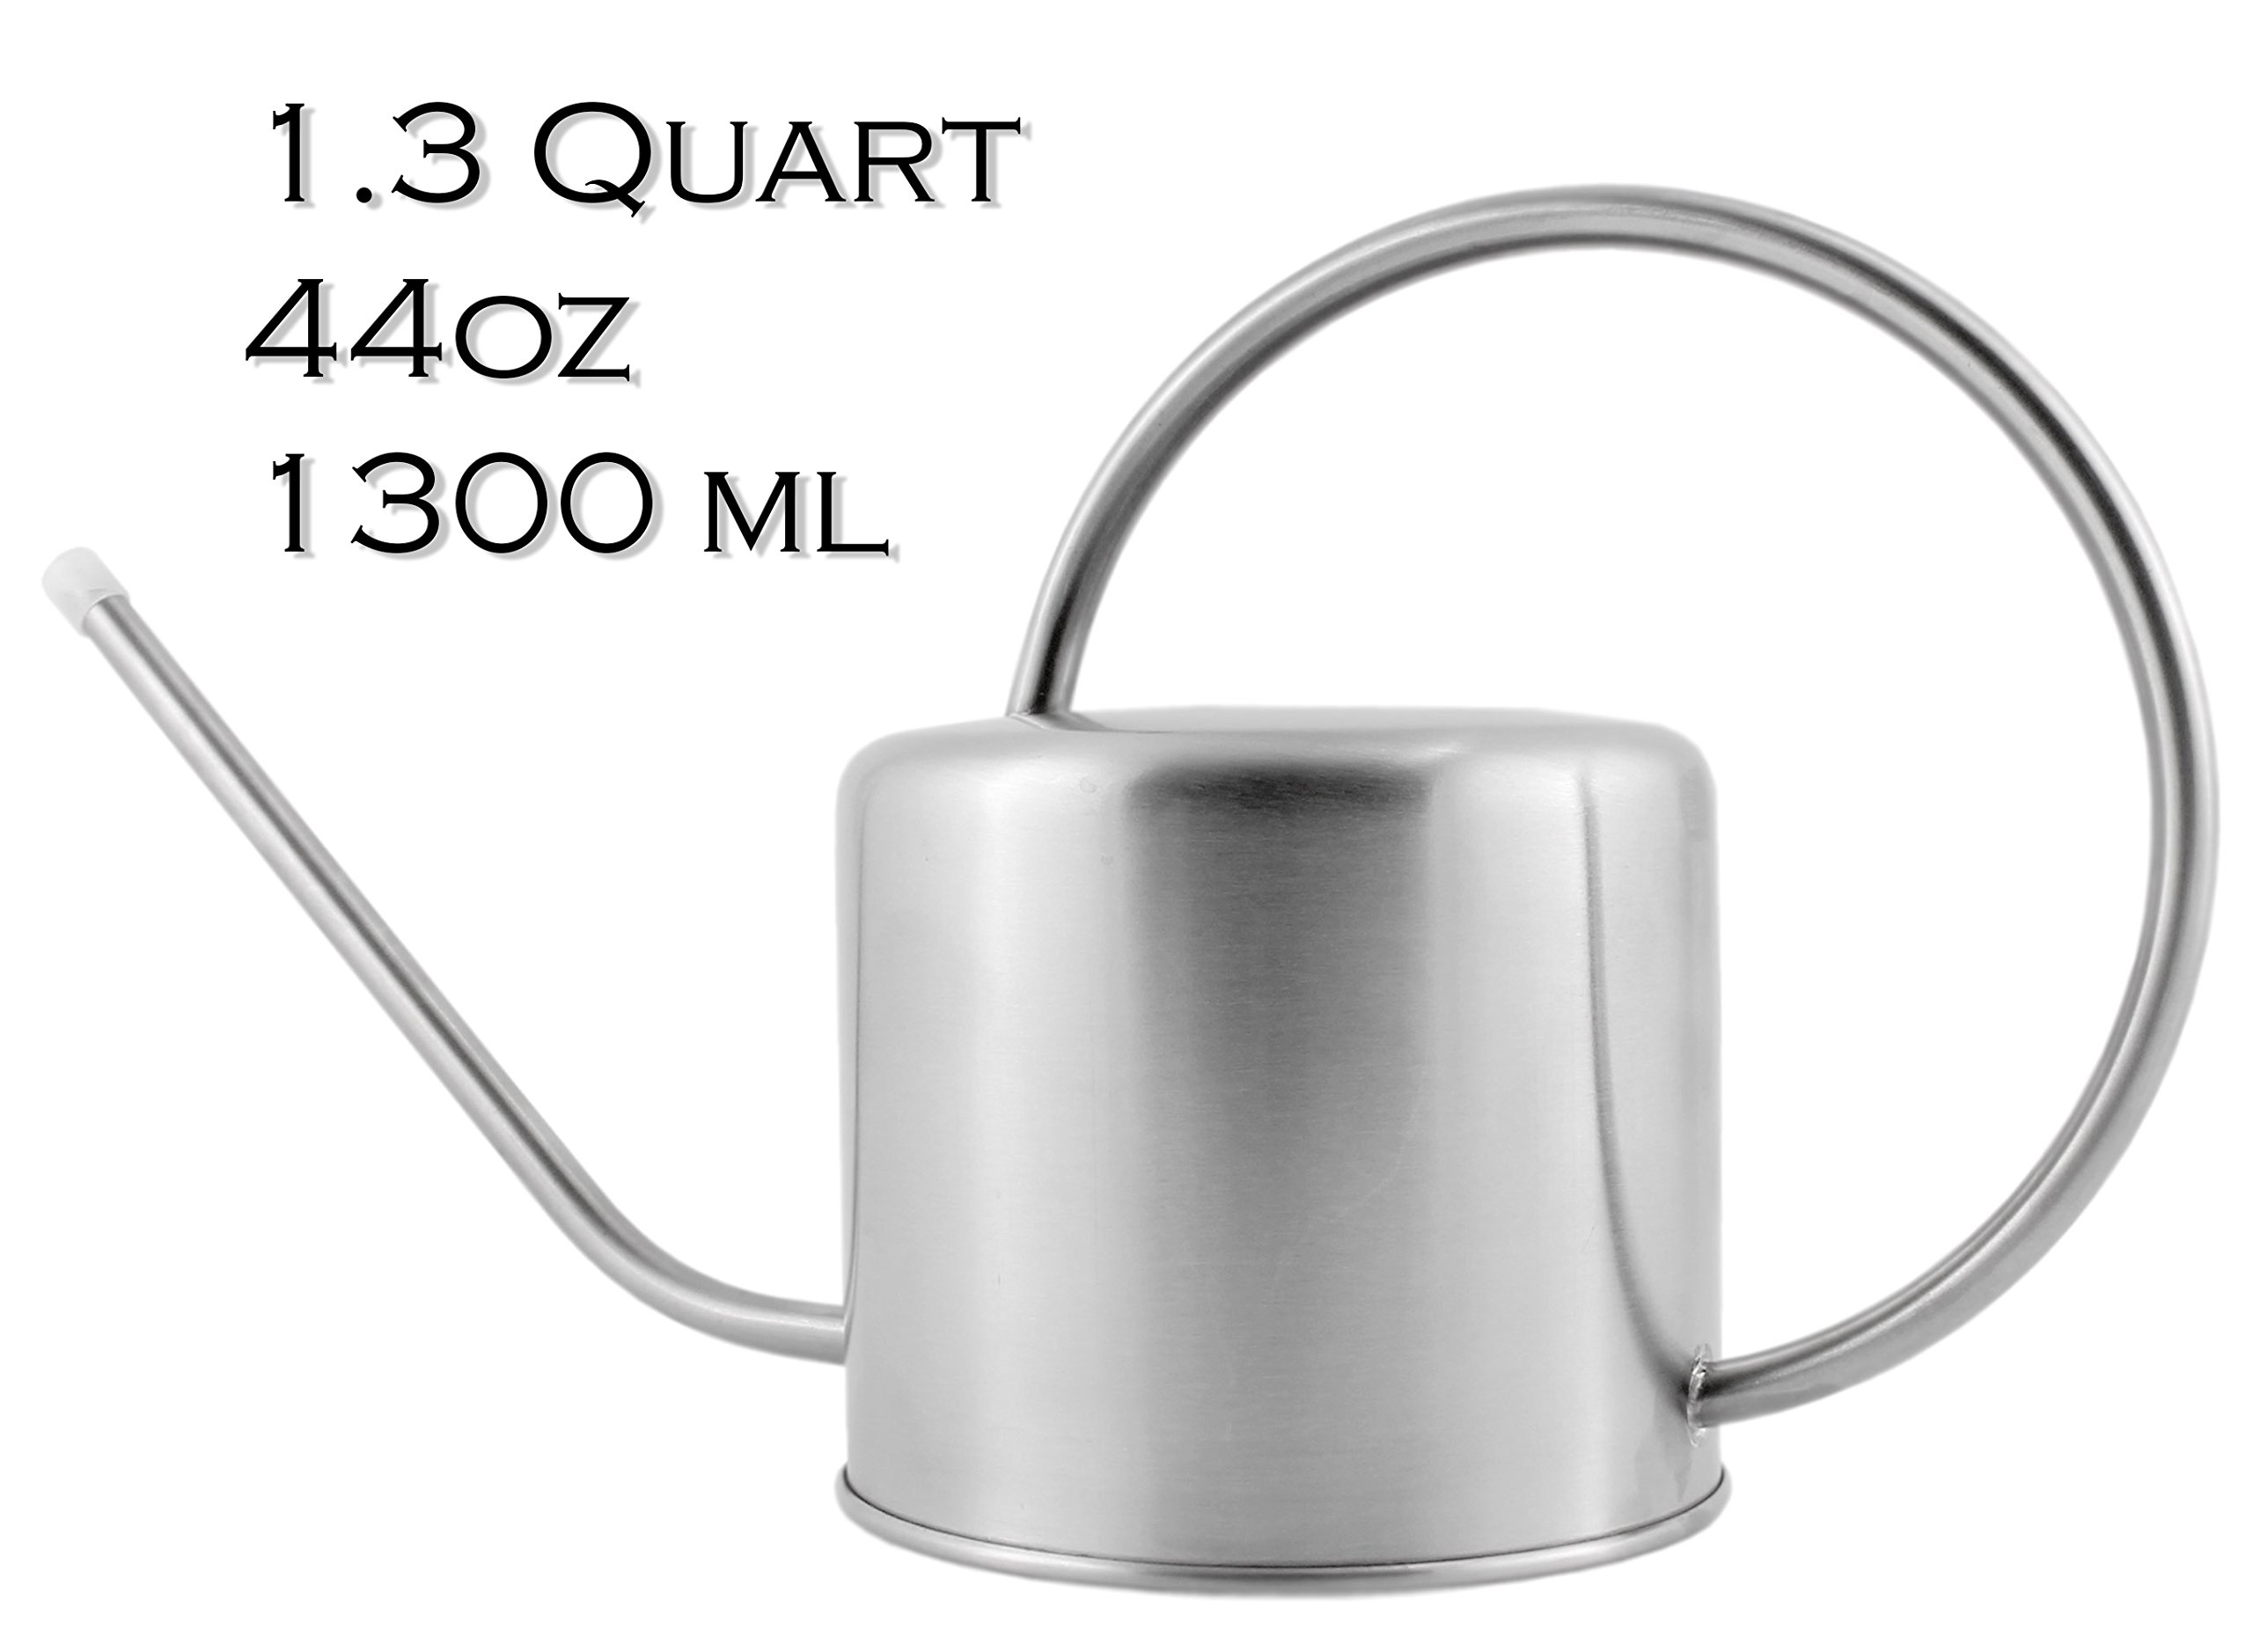 Darware Stainless Steel Watering Can — 1.3 Quart/44oz/1300 ml Capacity Brushed SS Watering Pot, Long Spout & Elegant Curved Handle